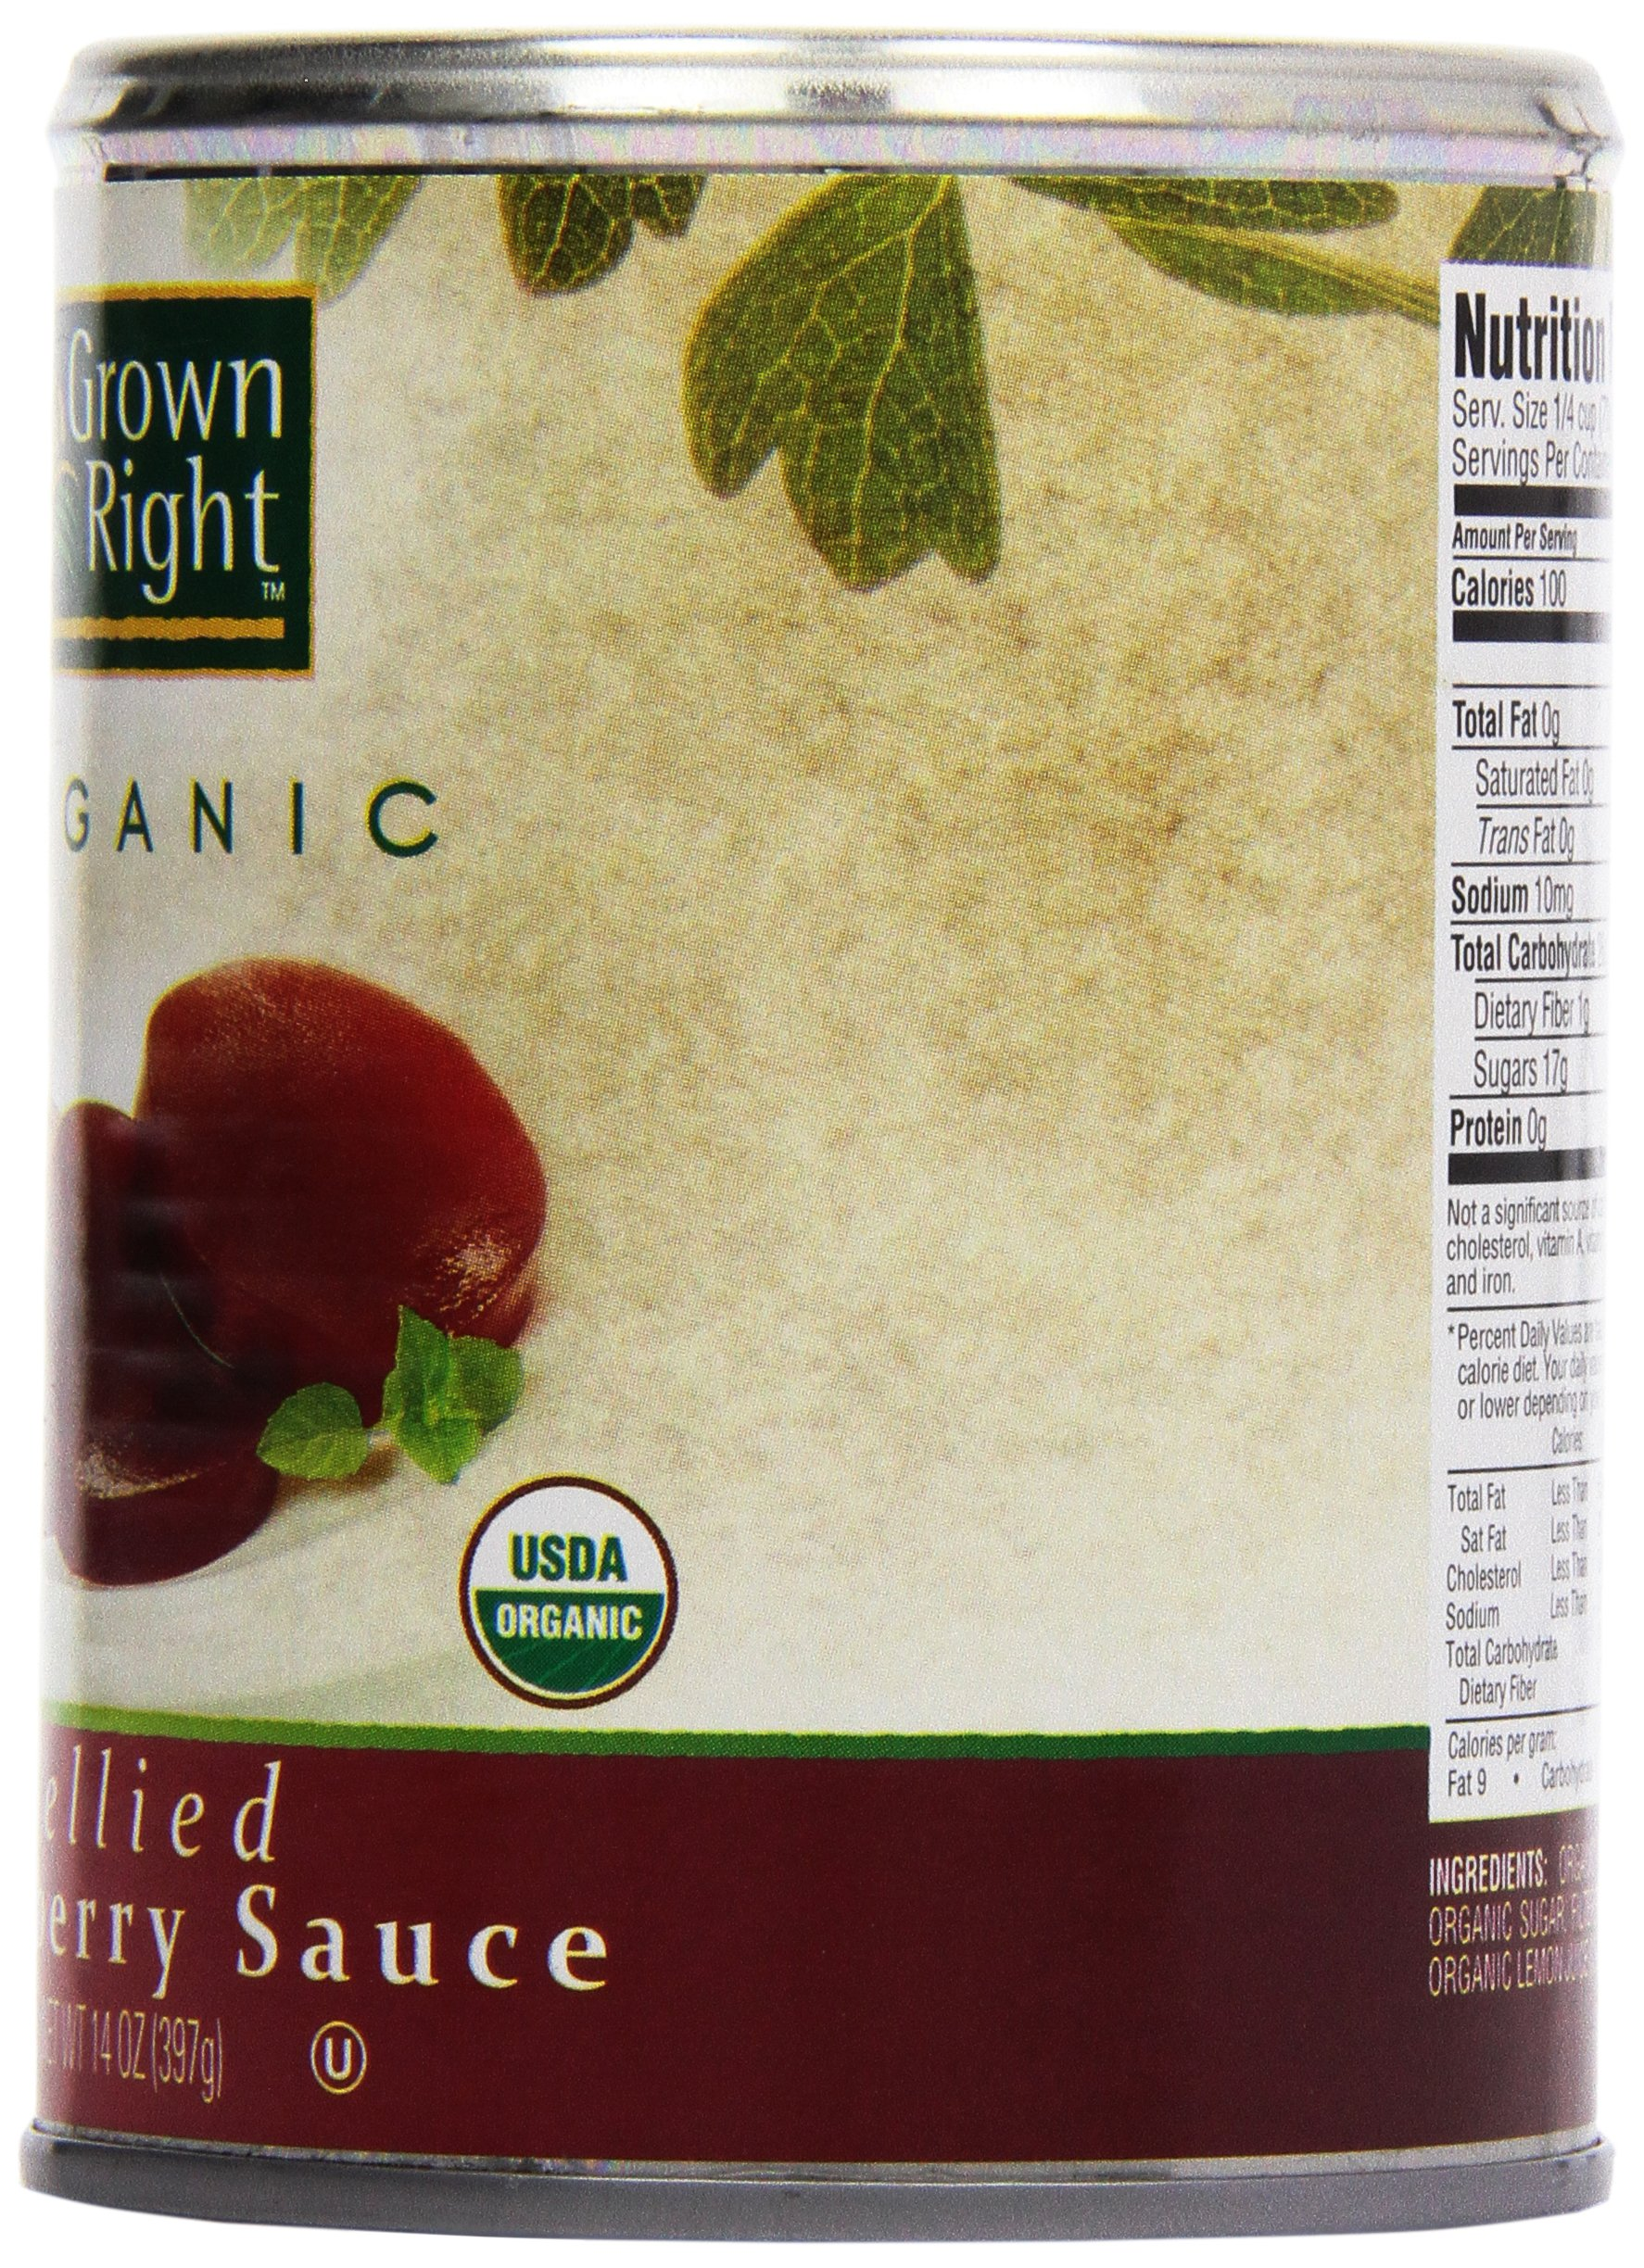 Grown Right Organic Jellied Cranberry Sauce, 16 oz by Grown Right (Image #4)